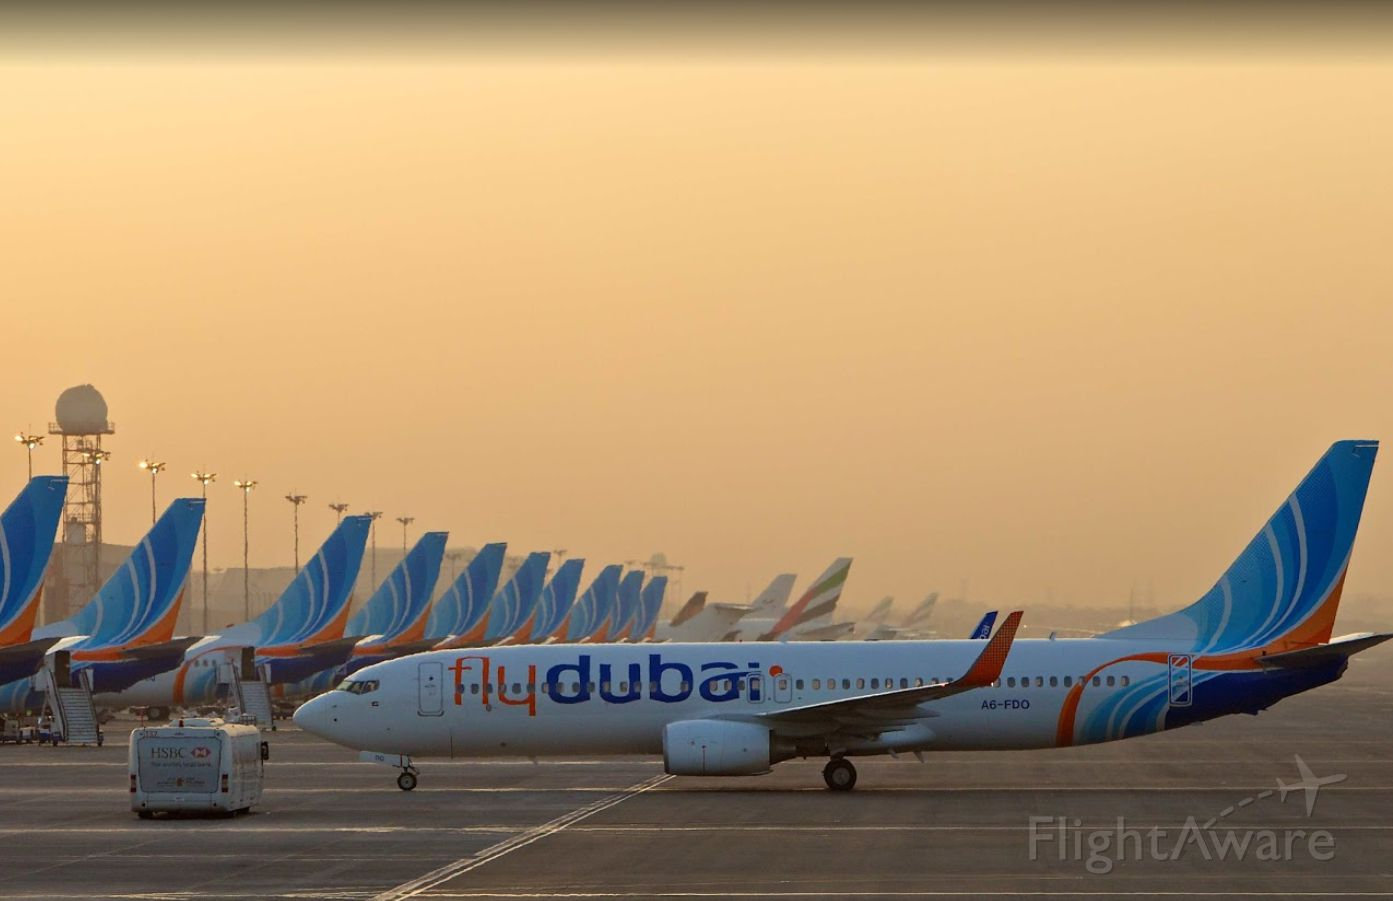 Boeing 737-800 (A6-FDO) - Arriving at dusk in Dubai to a packed terminal of Flydubai aircraft with another Flydubai 737